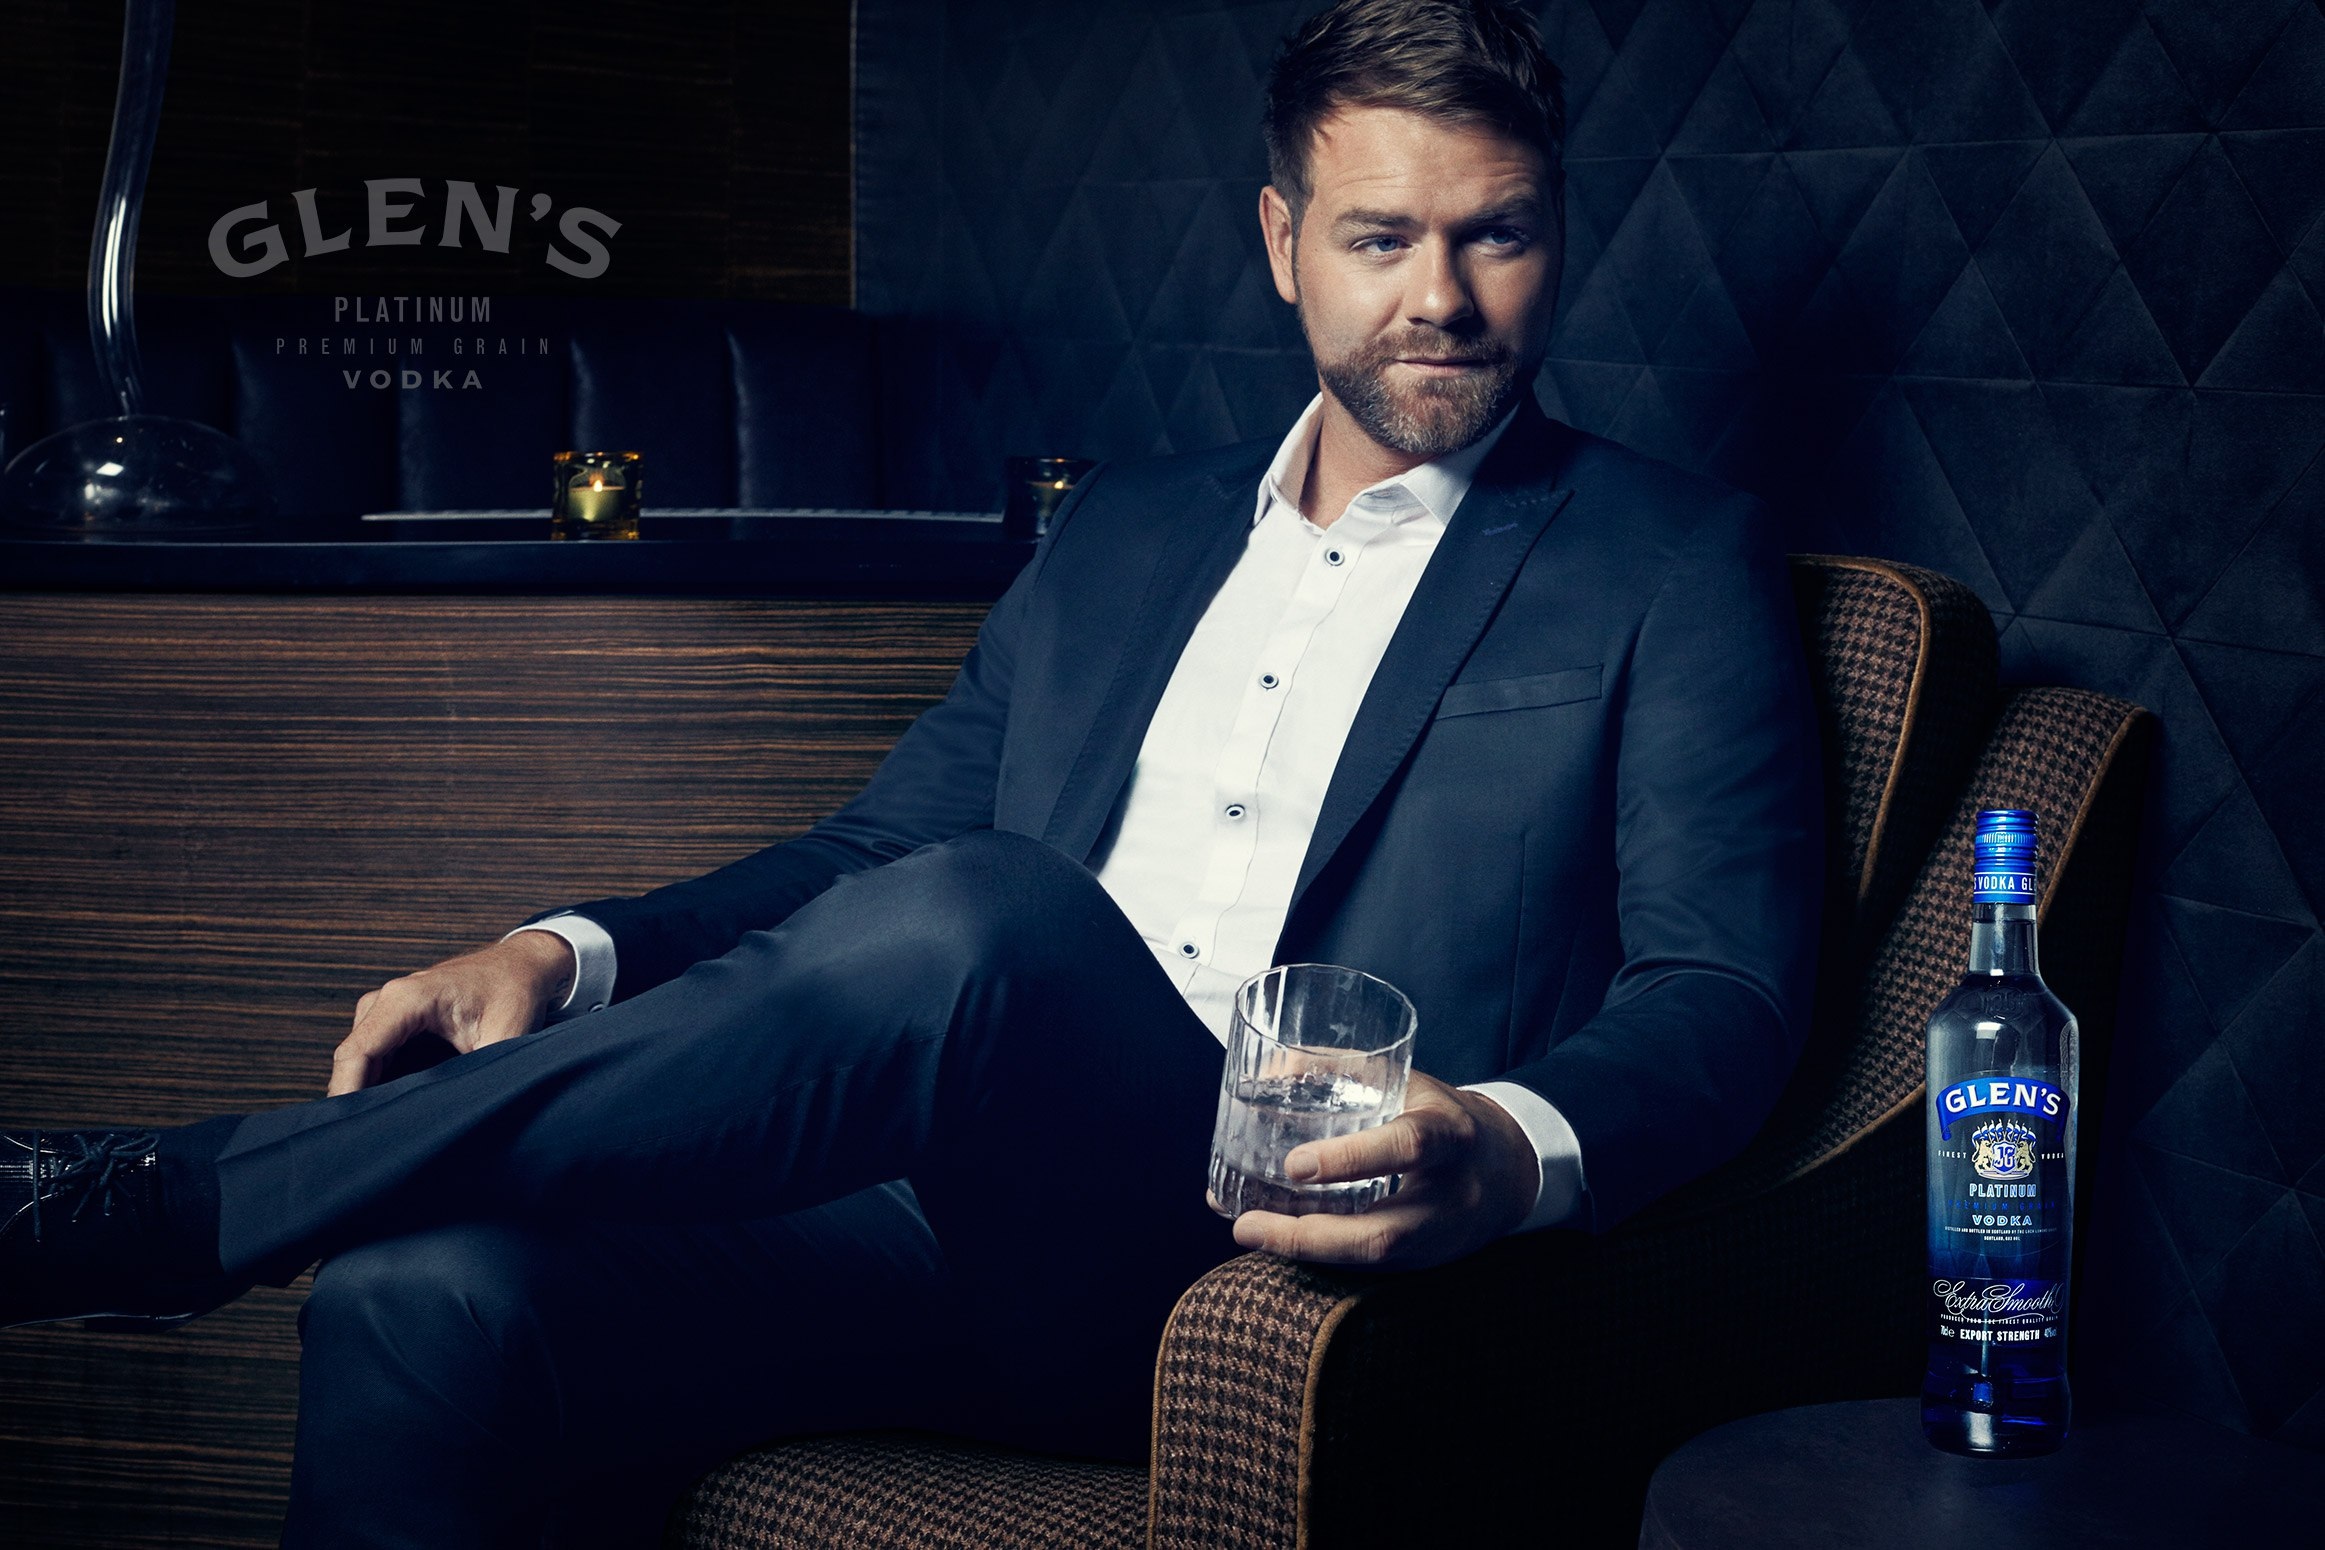 brian-mcfadden-ruth-rose-westlife-photoshoot-glens-vodka-1.jpg